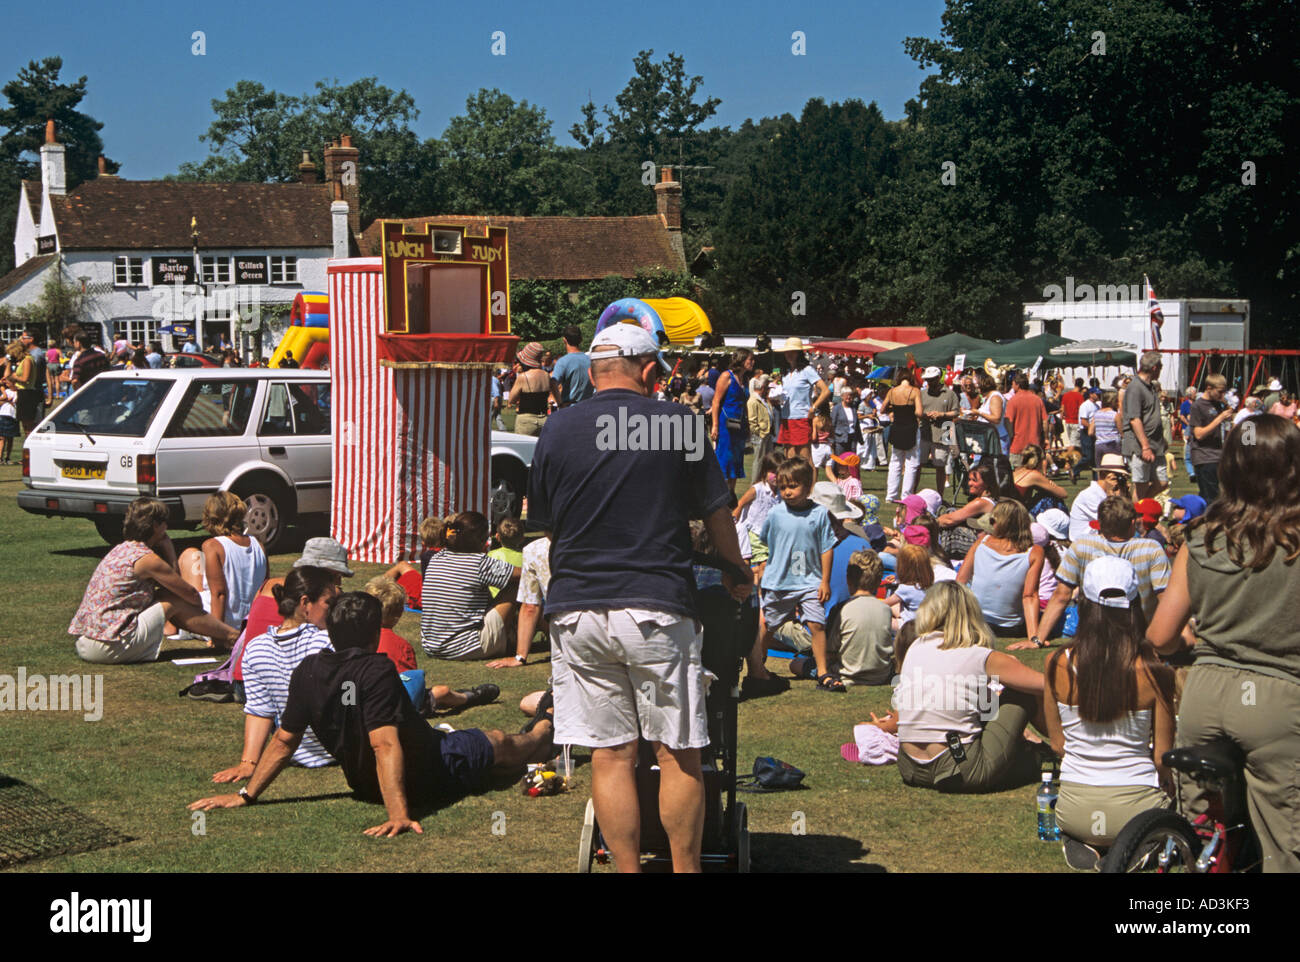 TILFORD SURREY UK July Children are enthralled by the antics of Punch and Judy at the annual summer fete - Stock Image